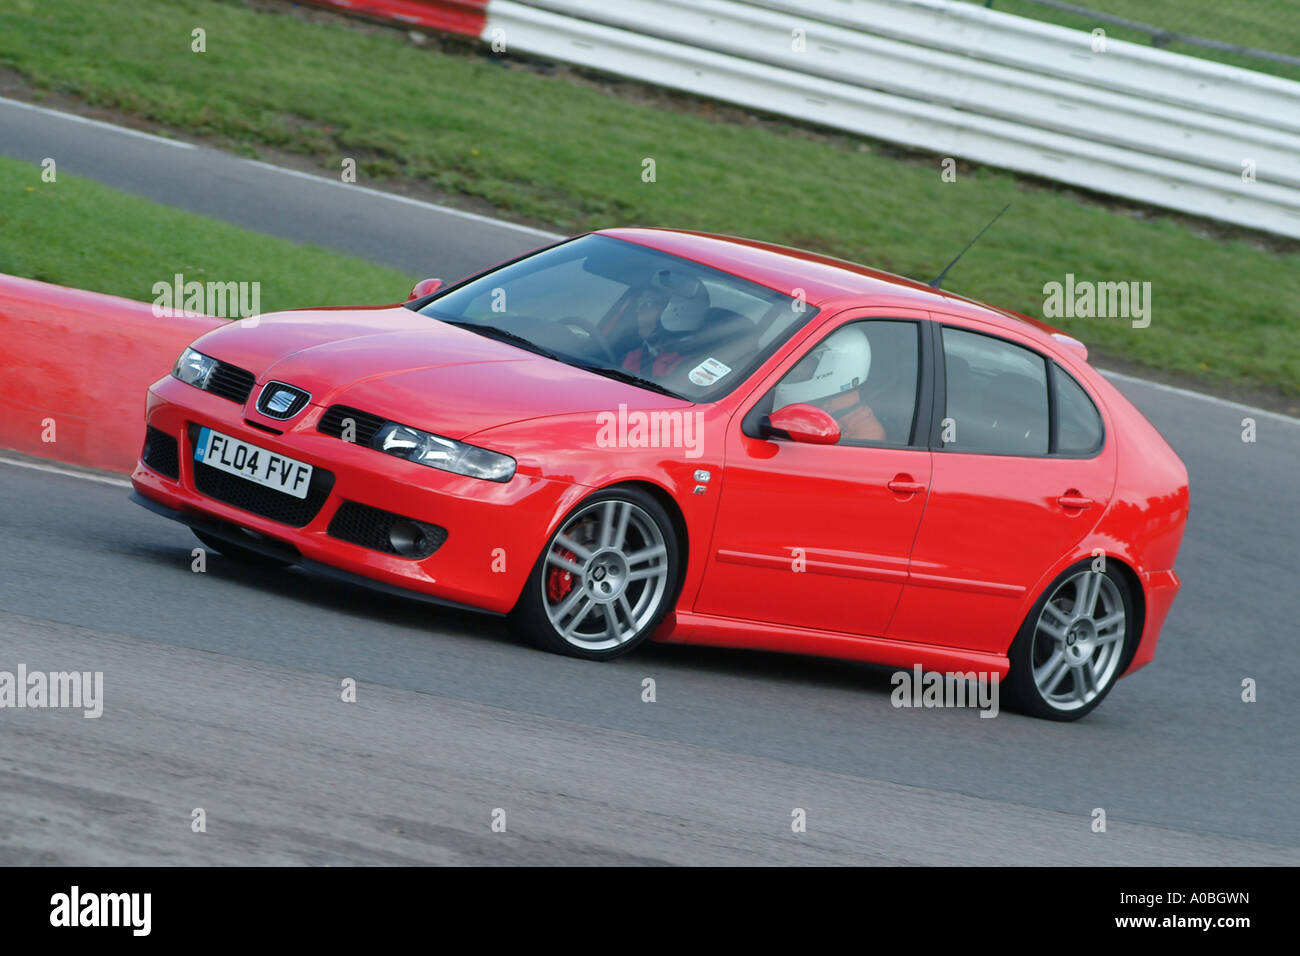 red seat leon cupra 2004 car on race track in the uk stock photo 9943664 alamy. Black Bedroom Furniture Sets. Home Design Ideas